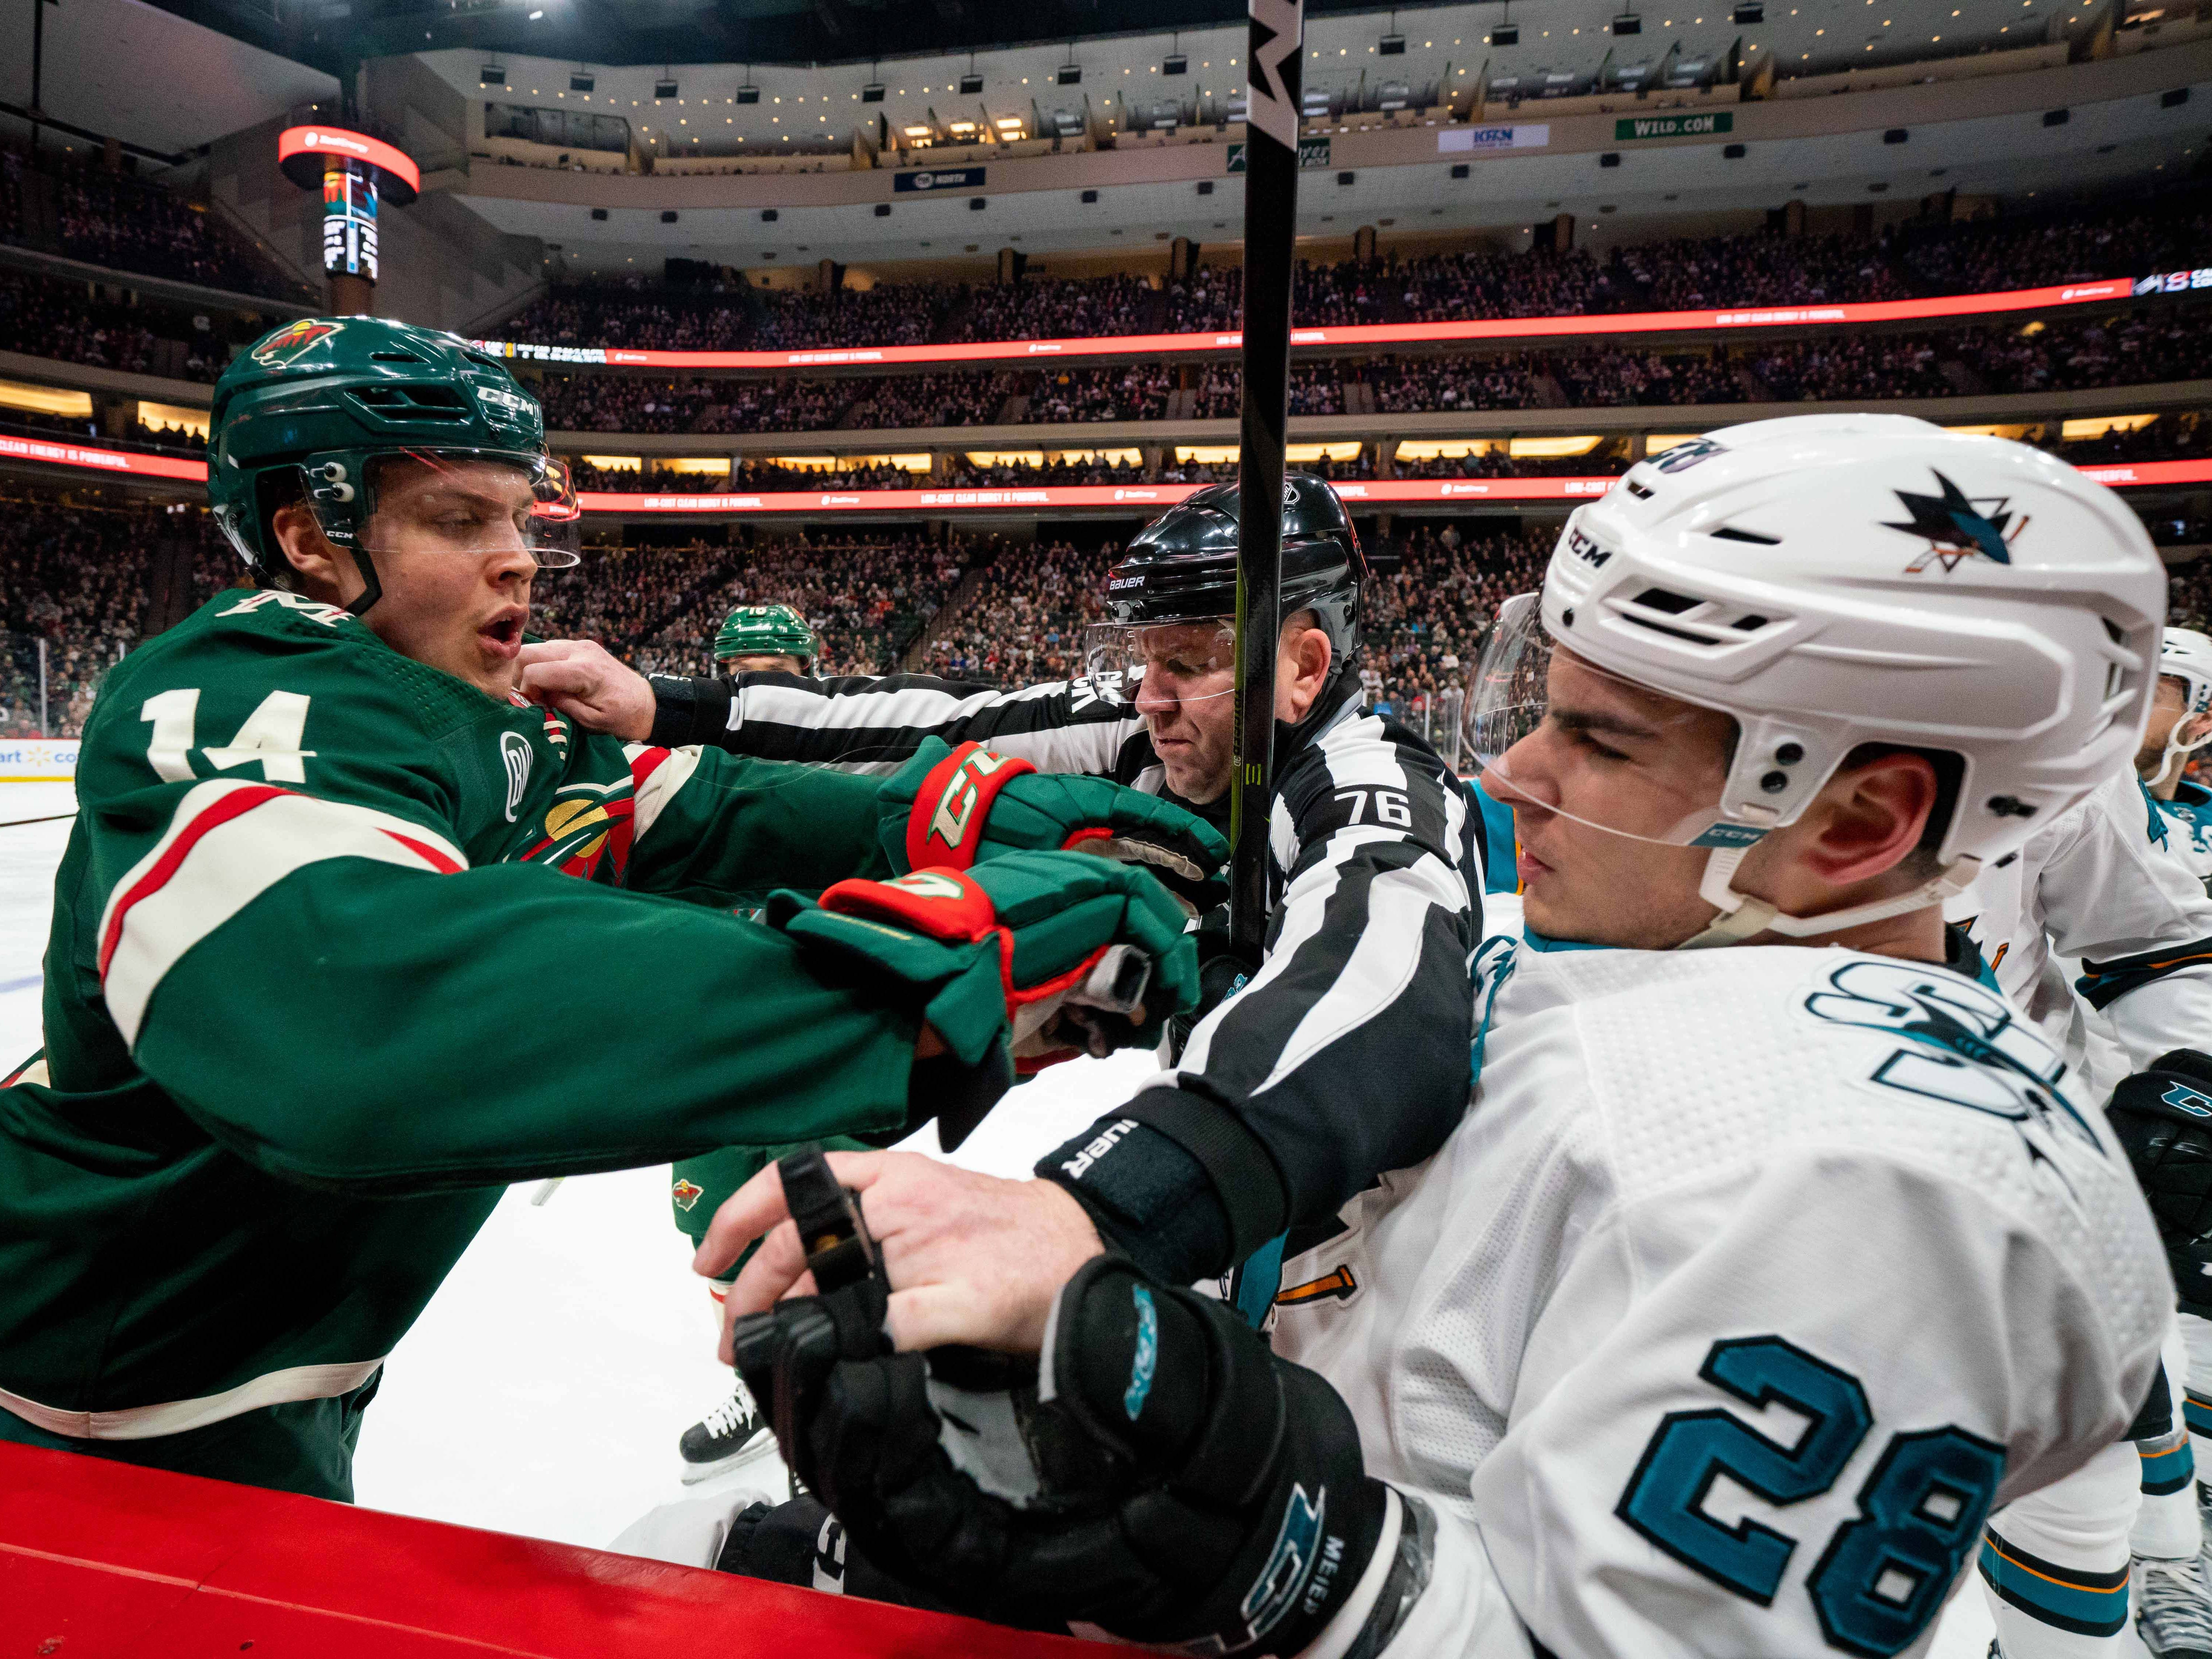 March 11: Minnesota Wild forward Joel Eriksson Ek (left) and San Jose Sharks forward Timo Meier (28) push each other in the third period at Xcel Energy Center. The Sharks won the game, 3-0.